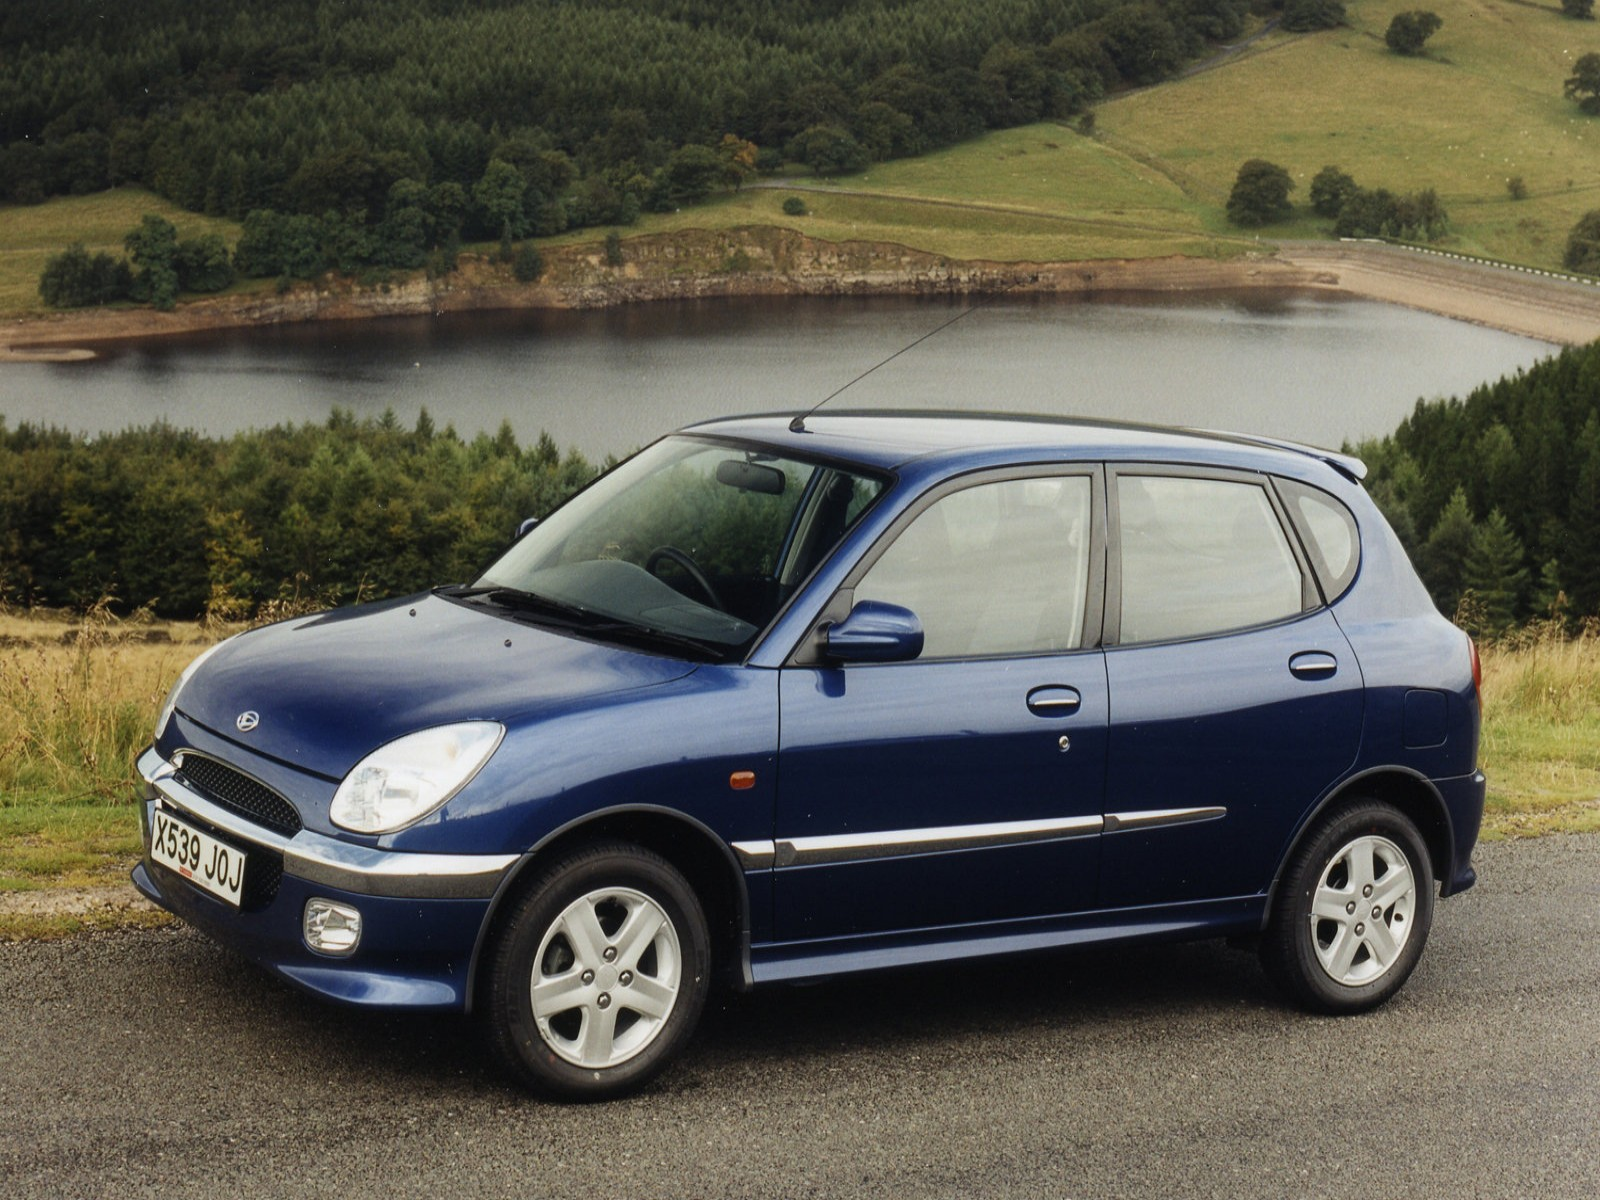 Car And Car Zone: Daihatsu Sirion 1999 new cars, car reviews, car